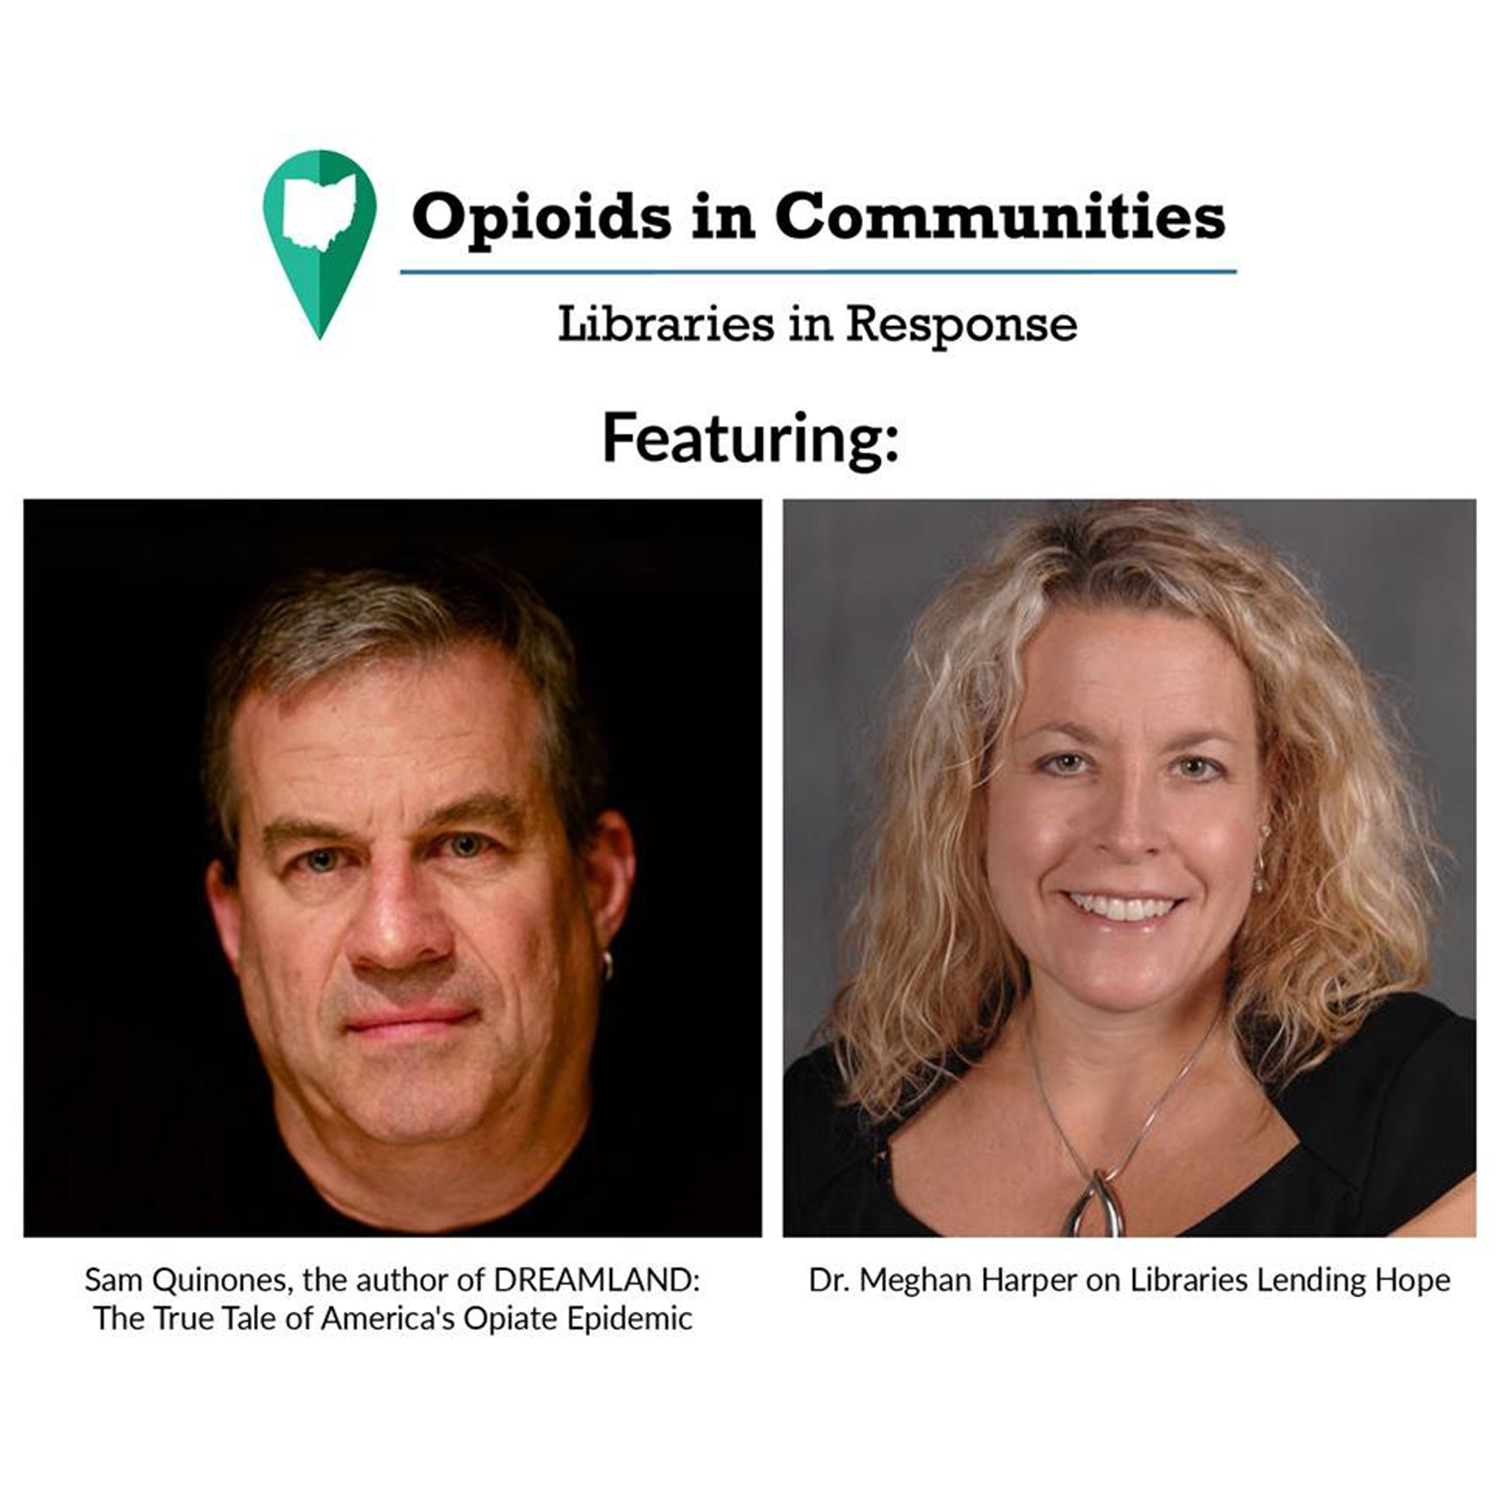 Dr. Harper and Sam Quinones Presentation Poster - Opioids in Communities